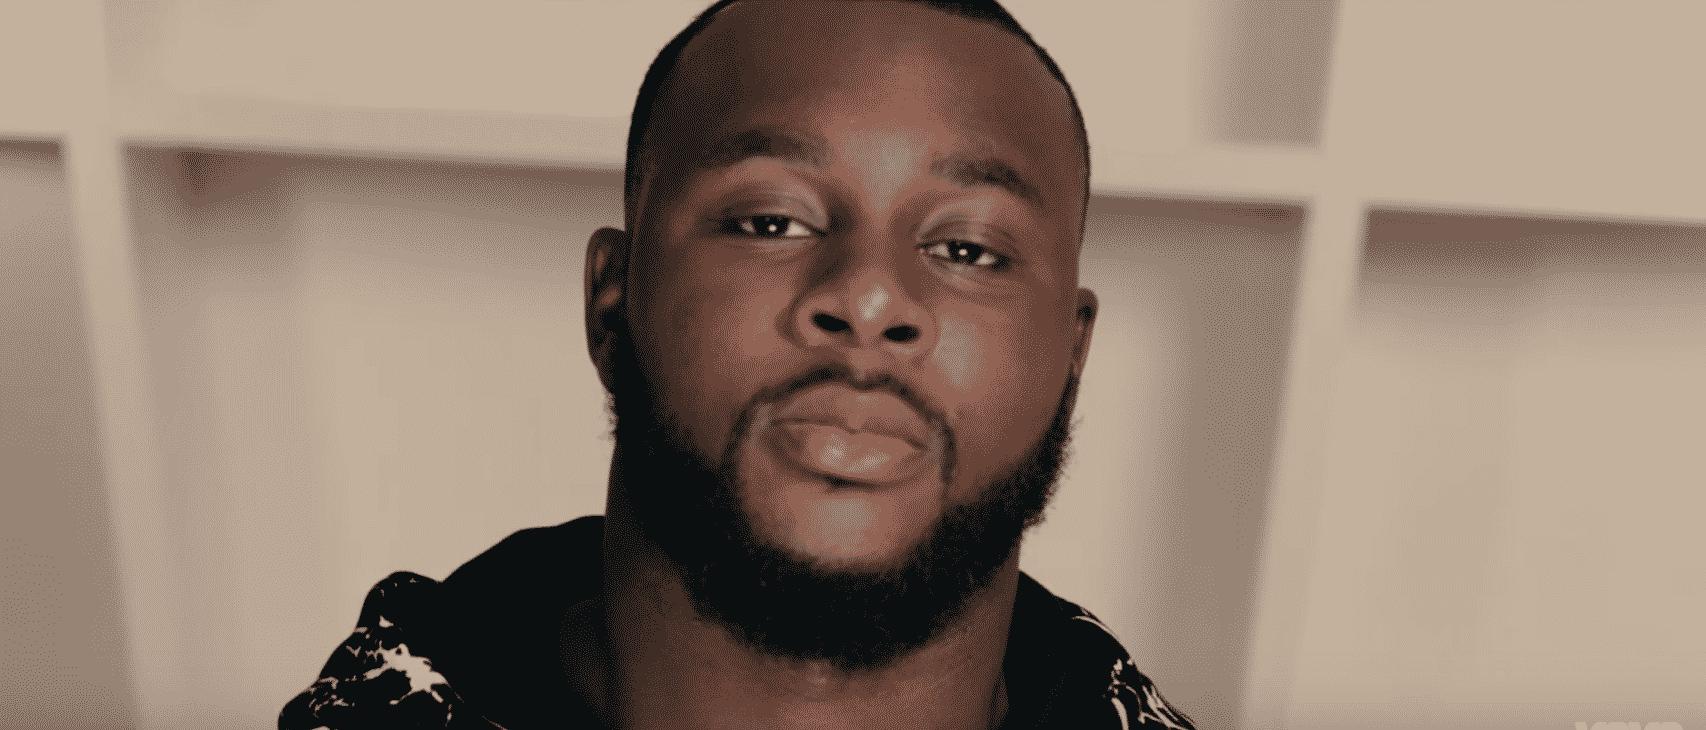 image abou debeing interview hhc